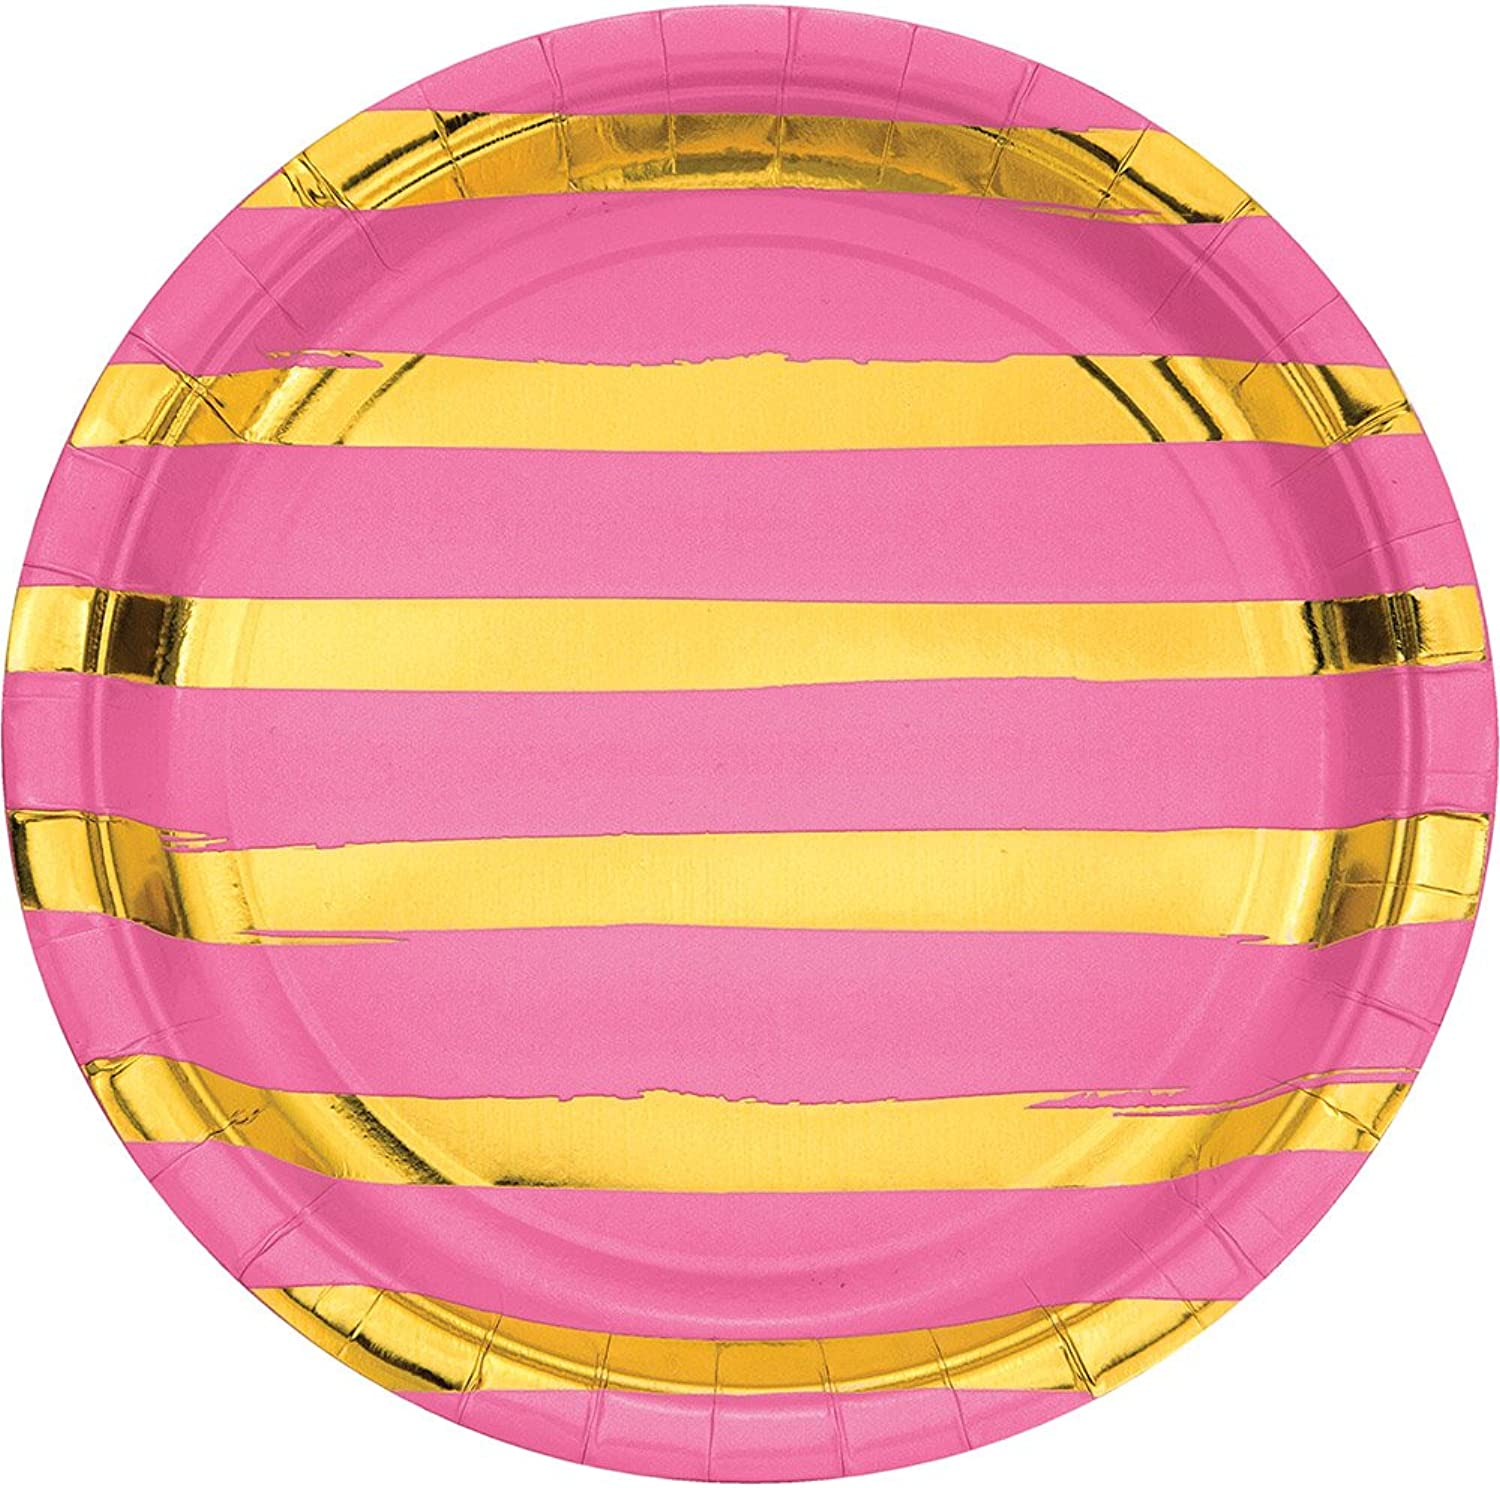 Creative Congreening 329953 Touch of color 96-Count Dinner Paper Plates, Touch Of color Candy Pink Foil